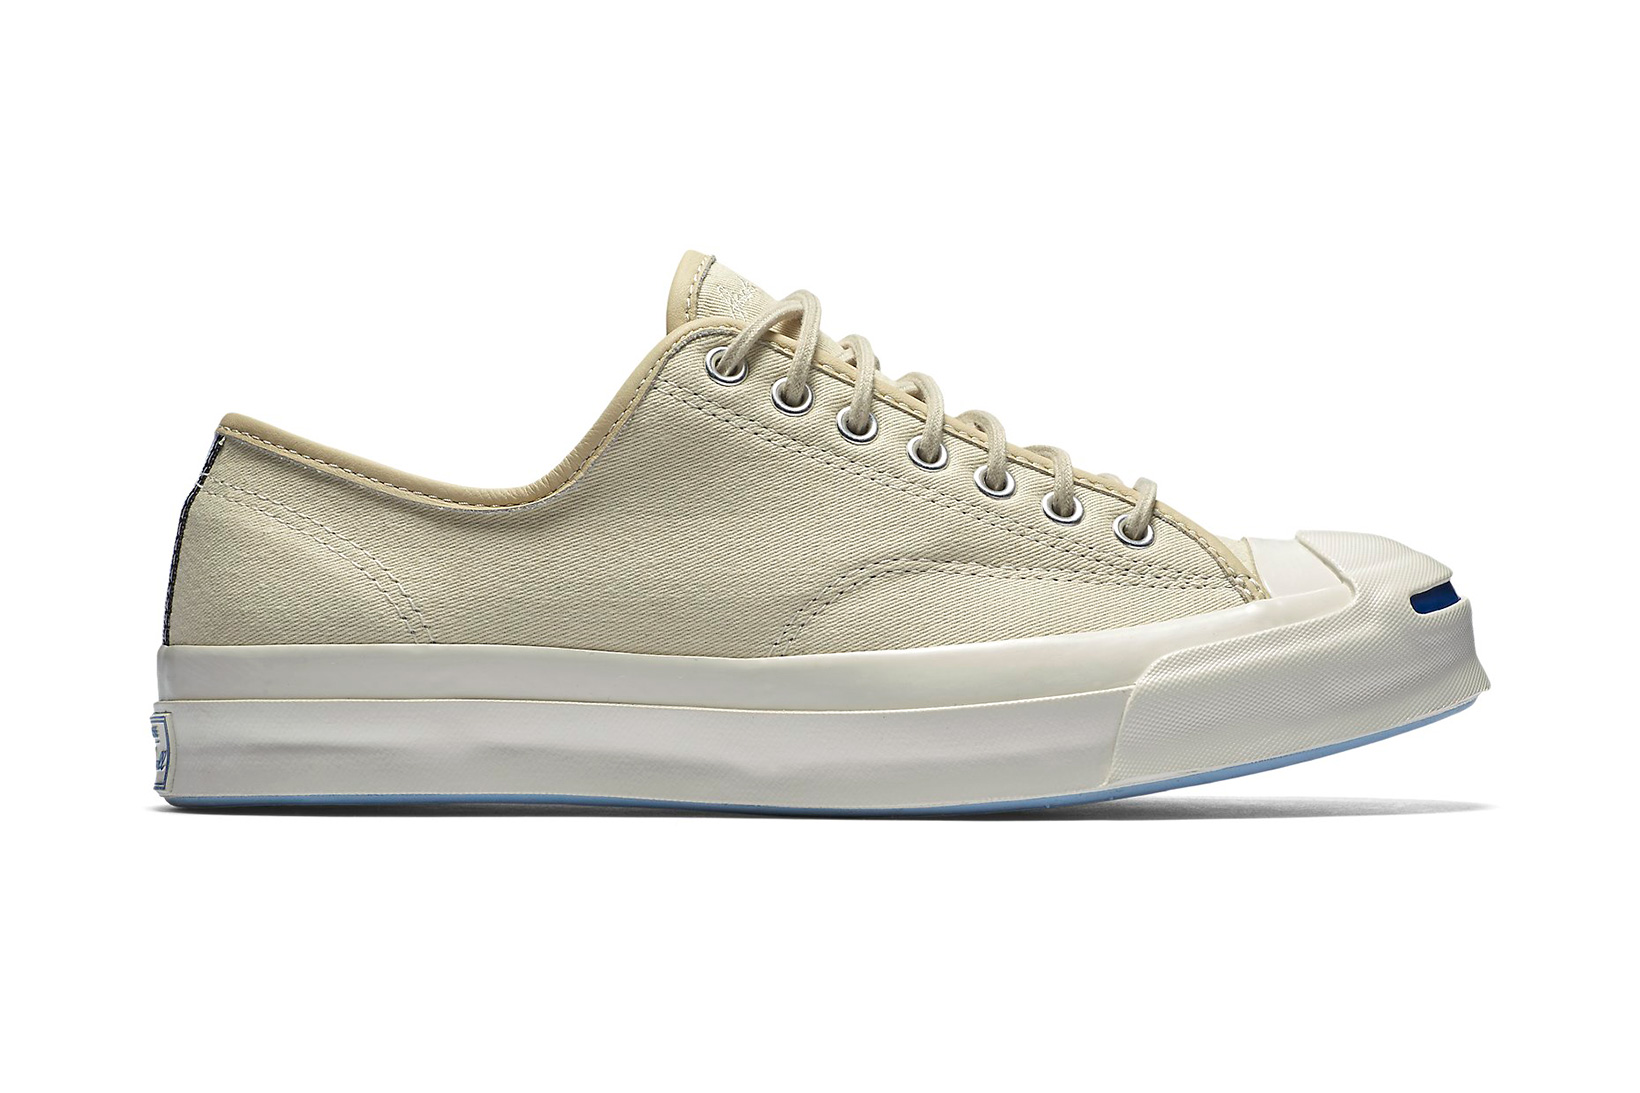 Converse Updates Its Jack Purcell With Counter Climate Technology